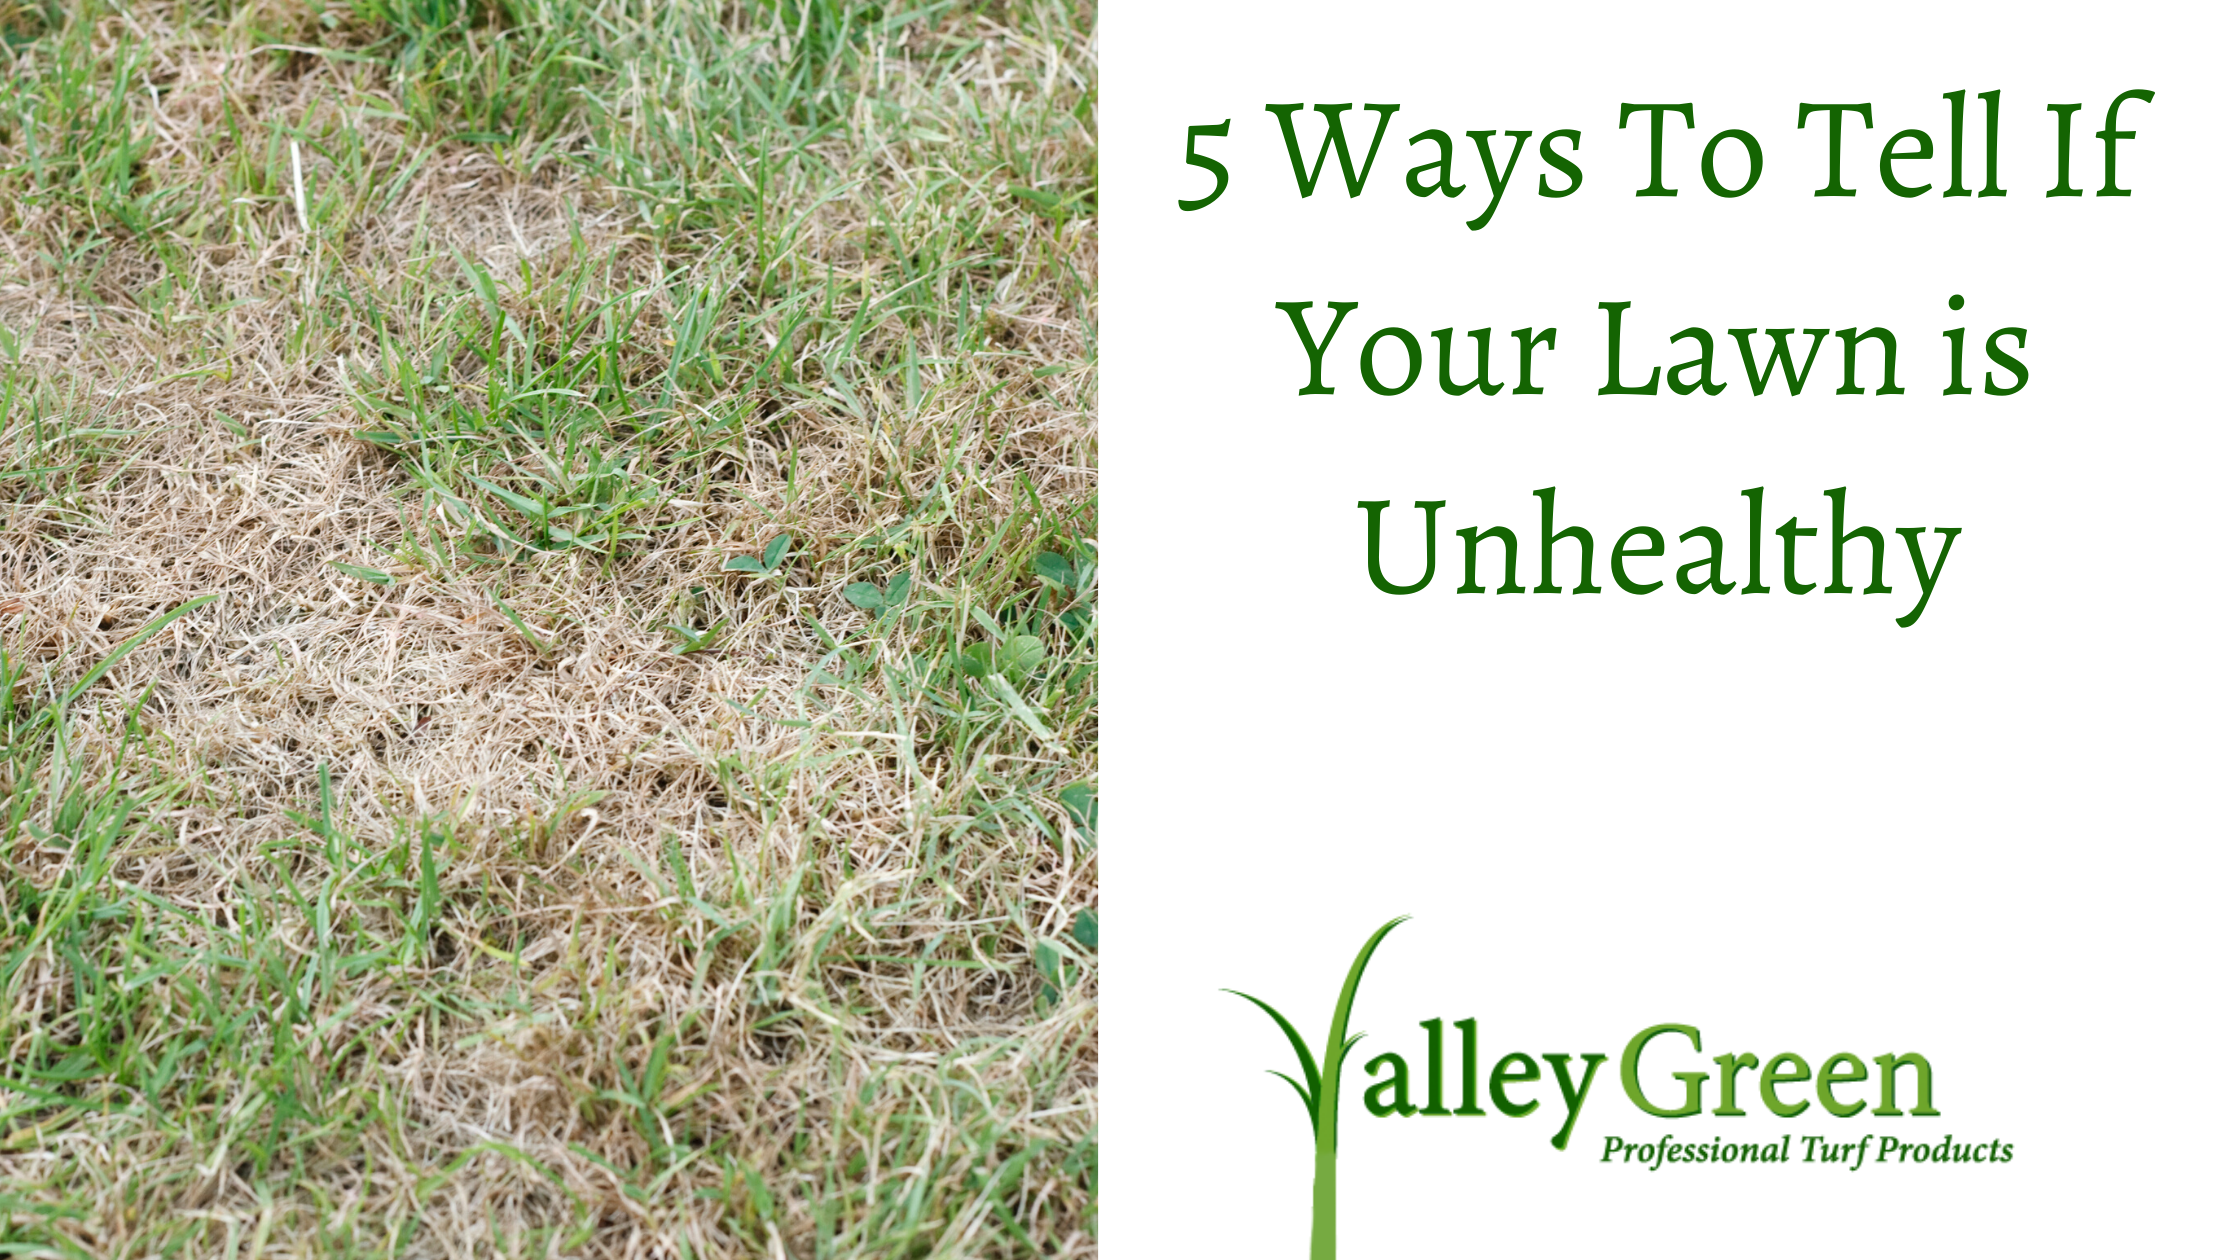 Ways to tell if your lawn in unhealthy